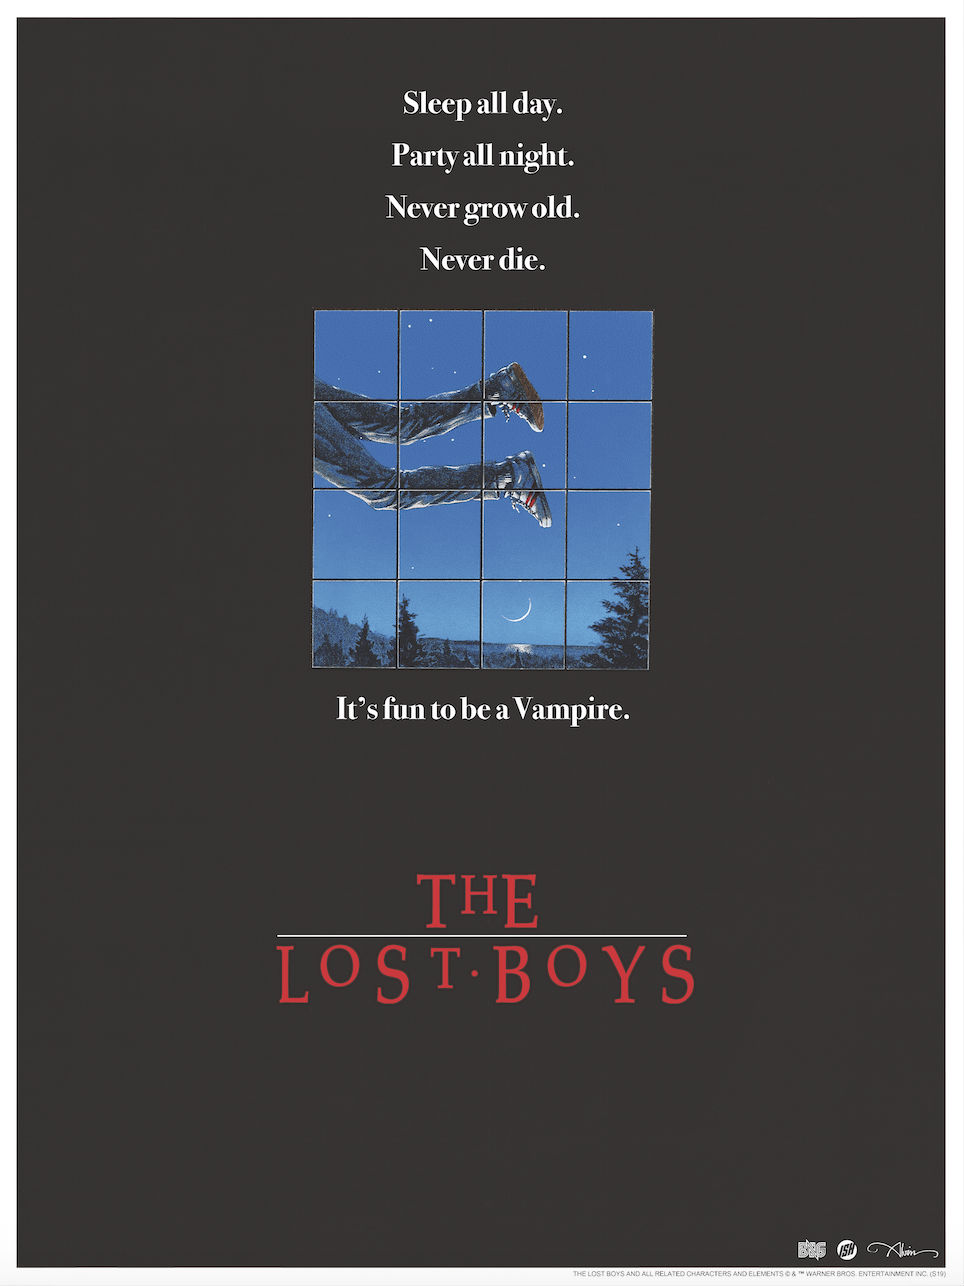 the lost boys poster2.jpg